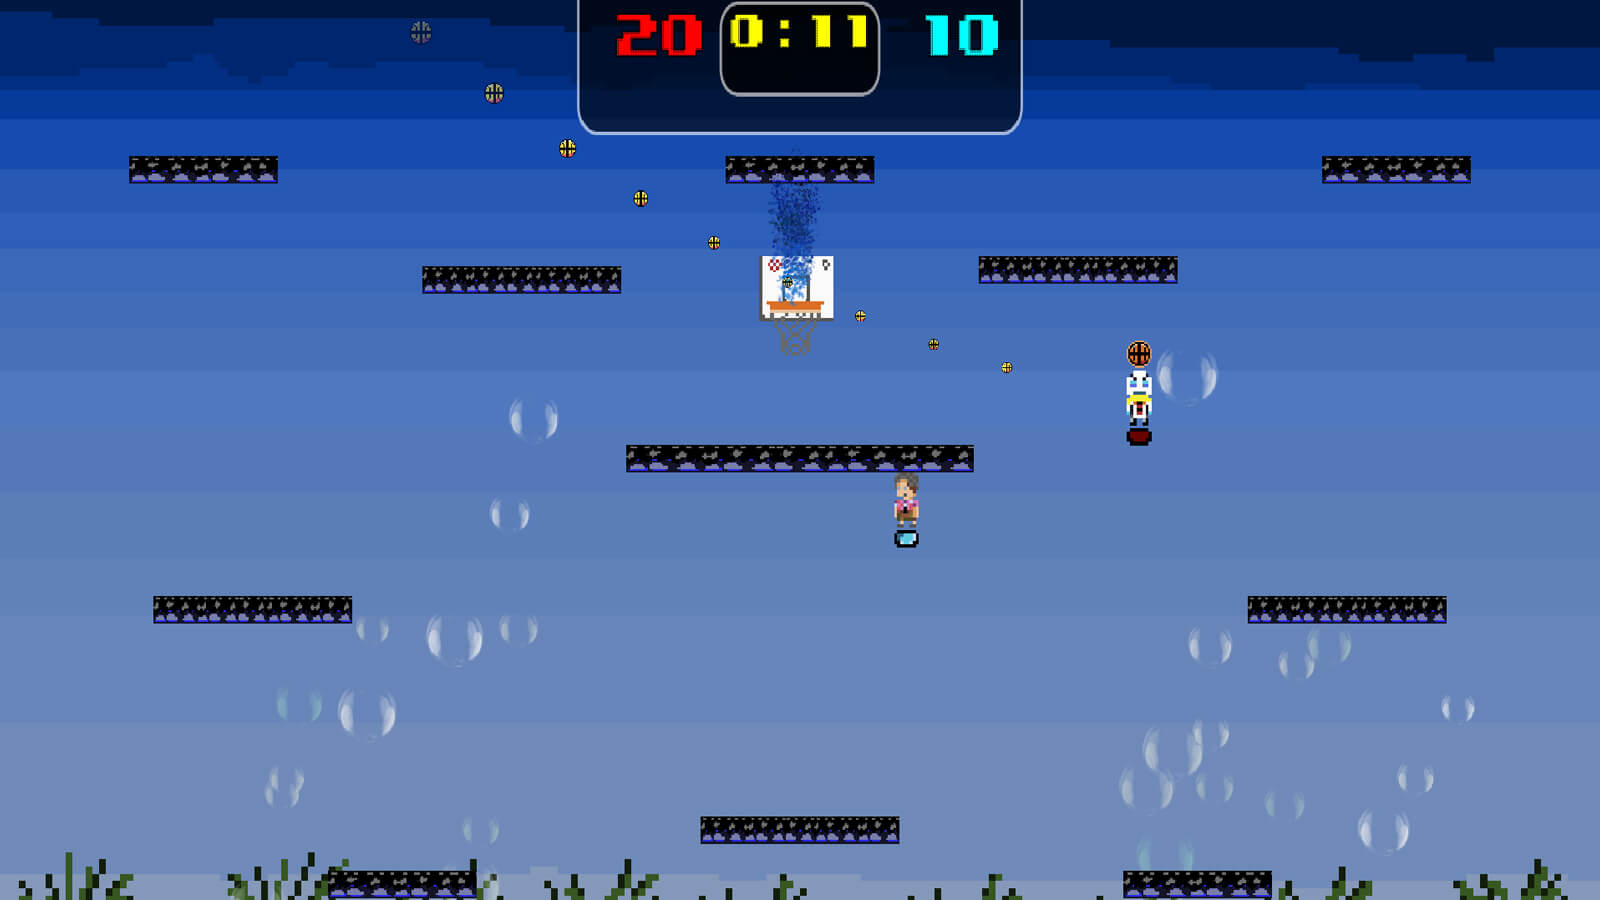 An underwater level with kelp and bubbles. A character is taking shots on the basket.